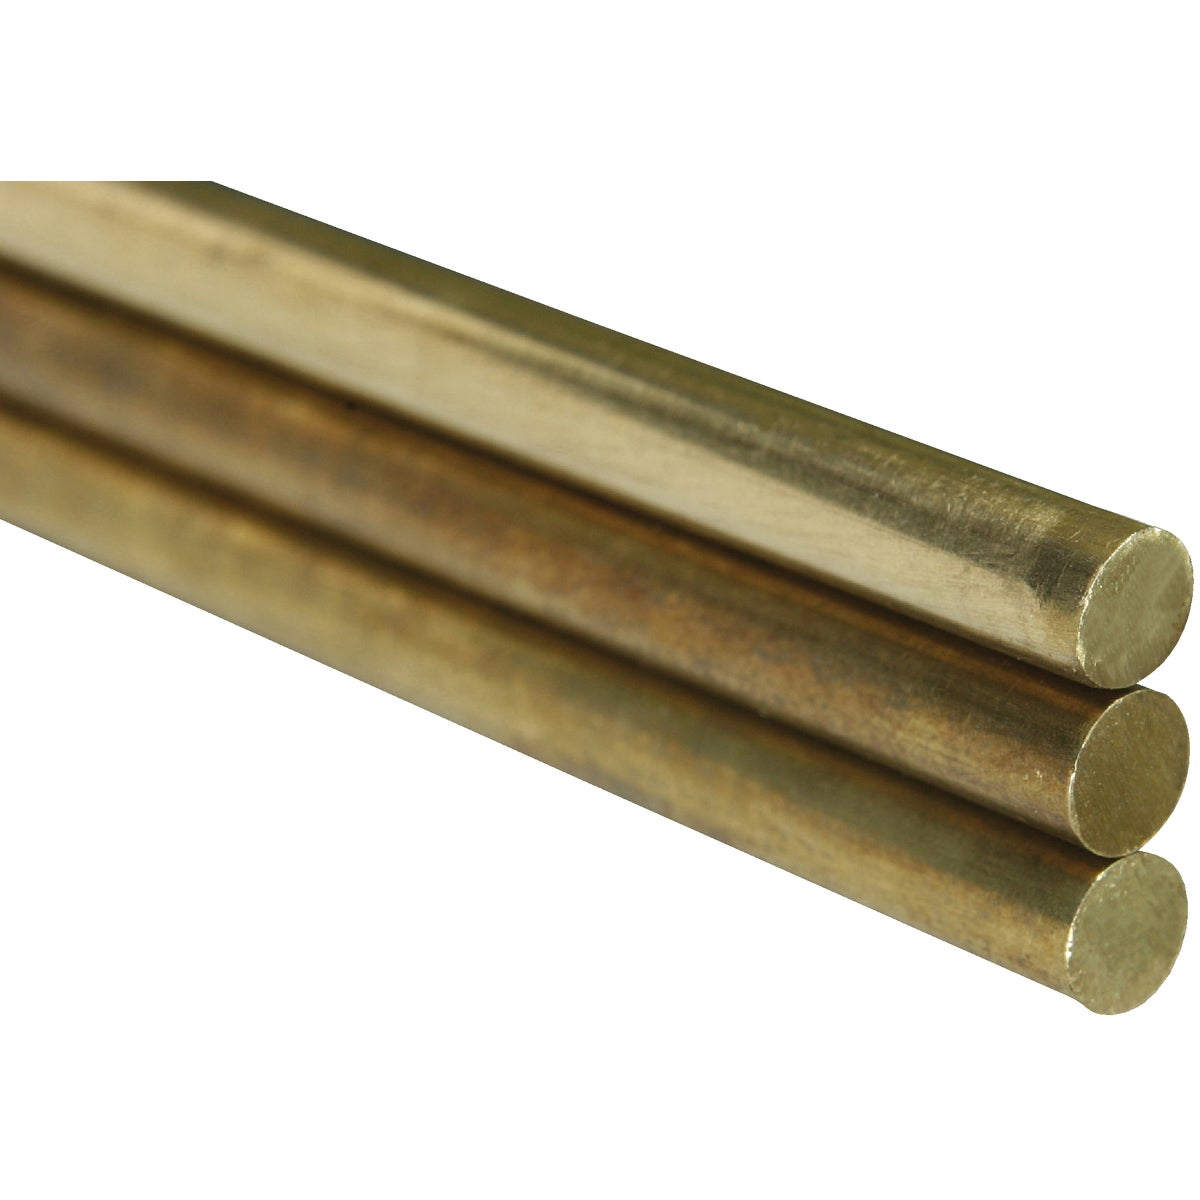 1/8X36 SOLID BRASS ROD - 1162 by K&s Precision Metals